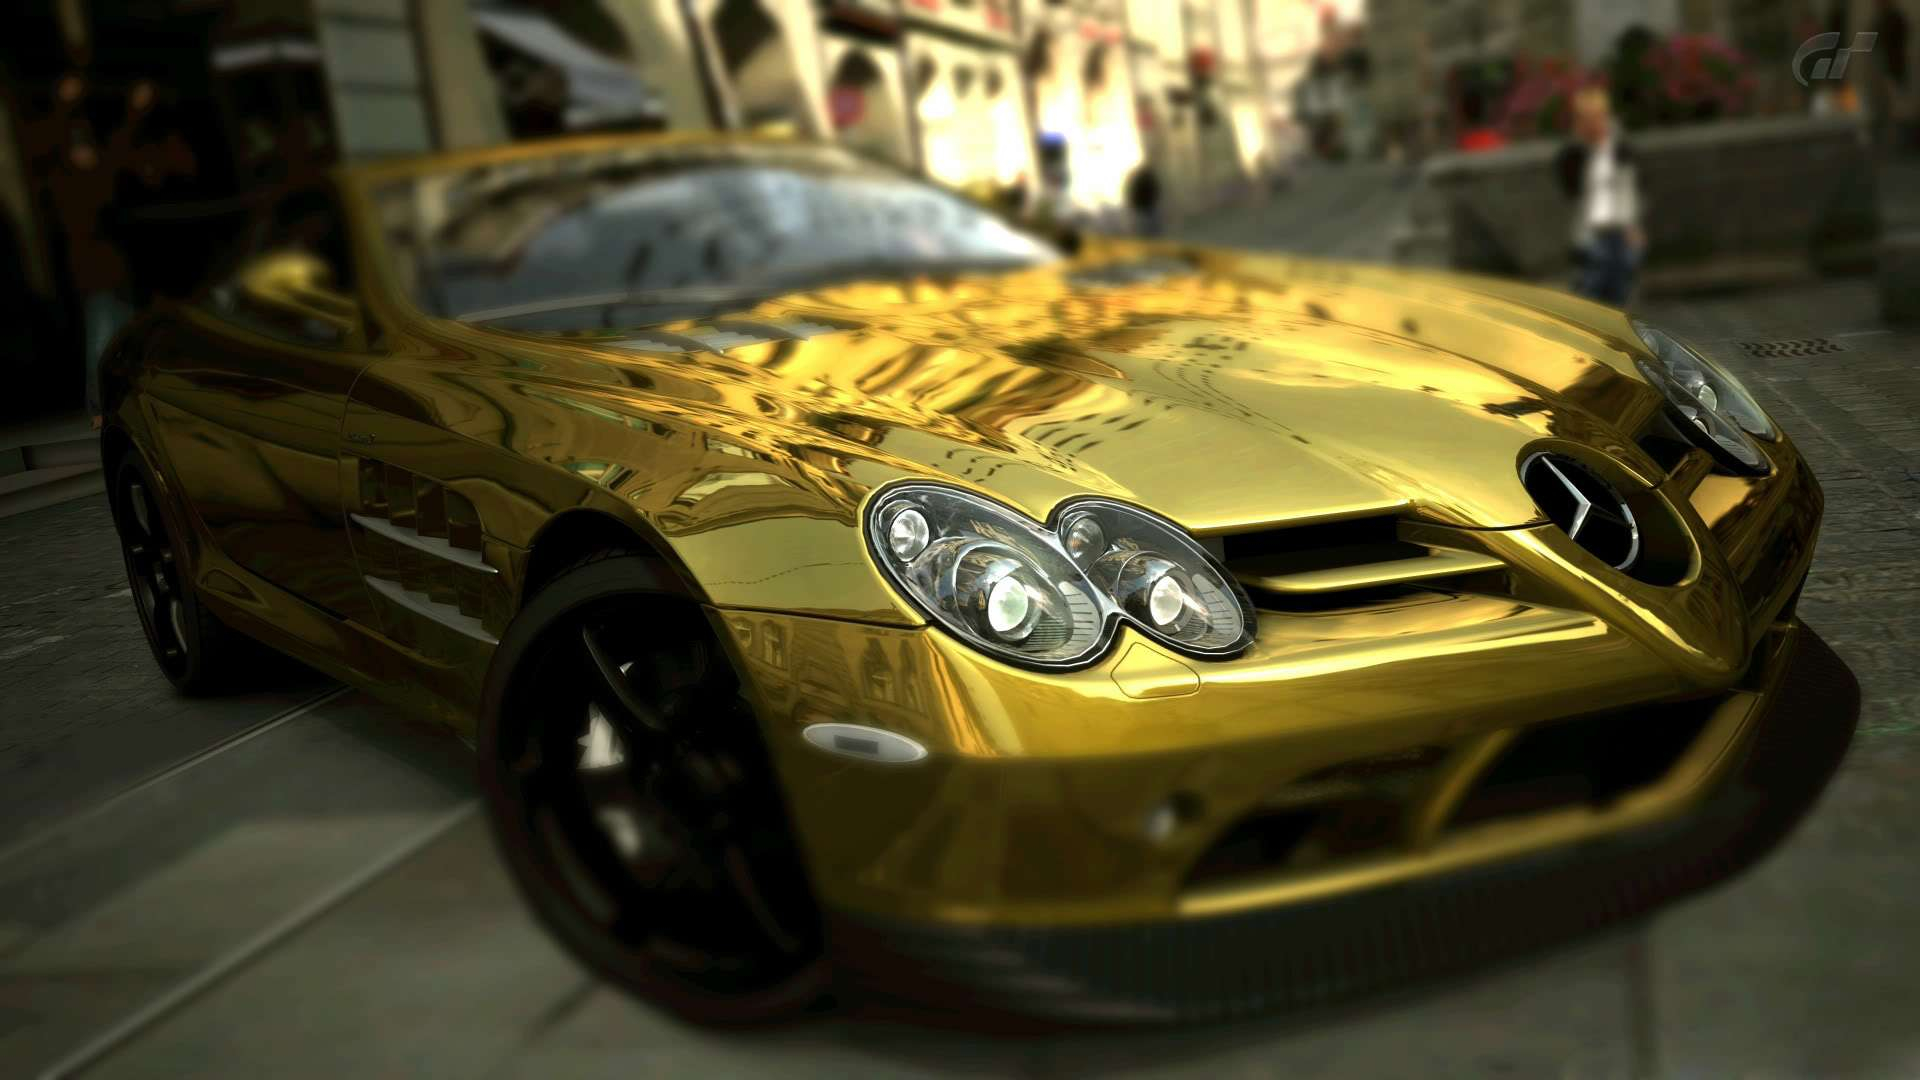 123 cool gold cars wallpapers pc mercedes benz slr